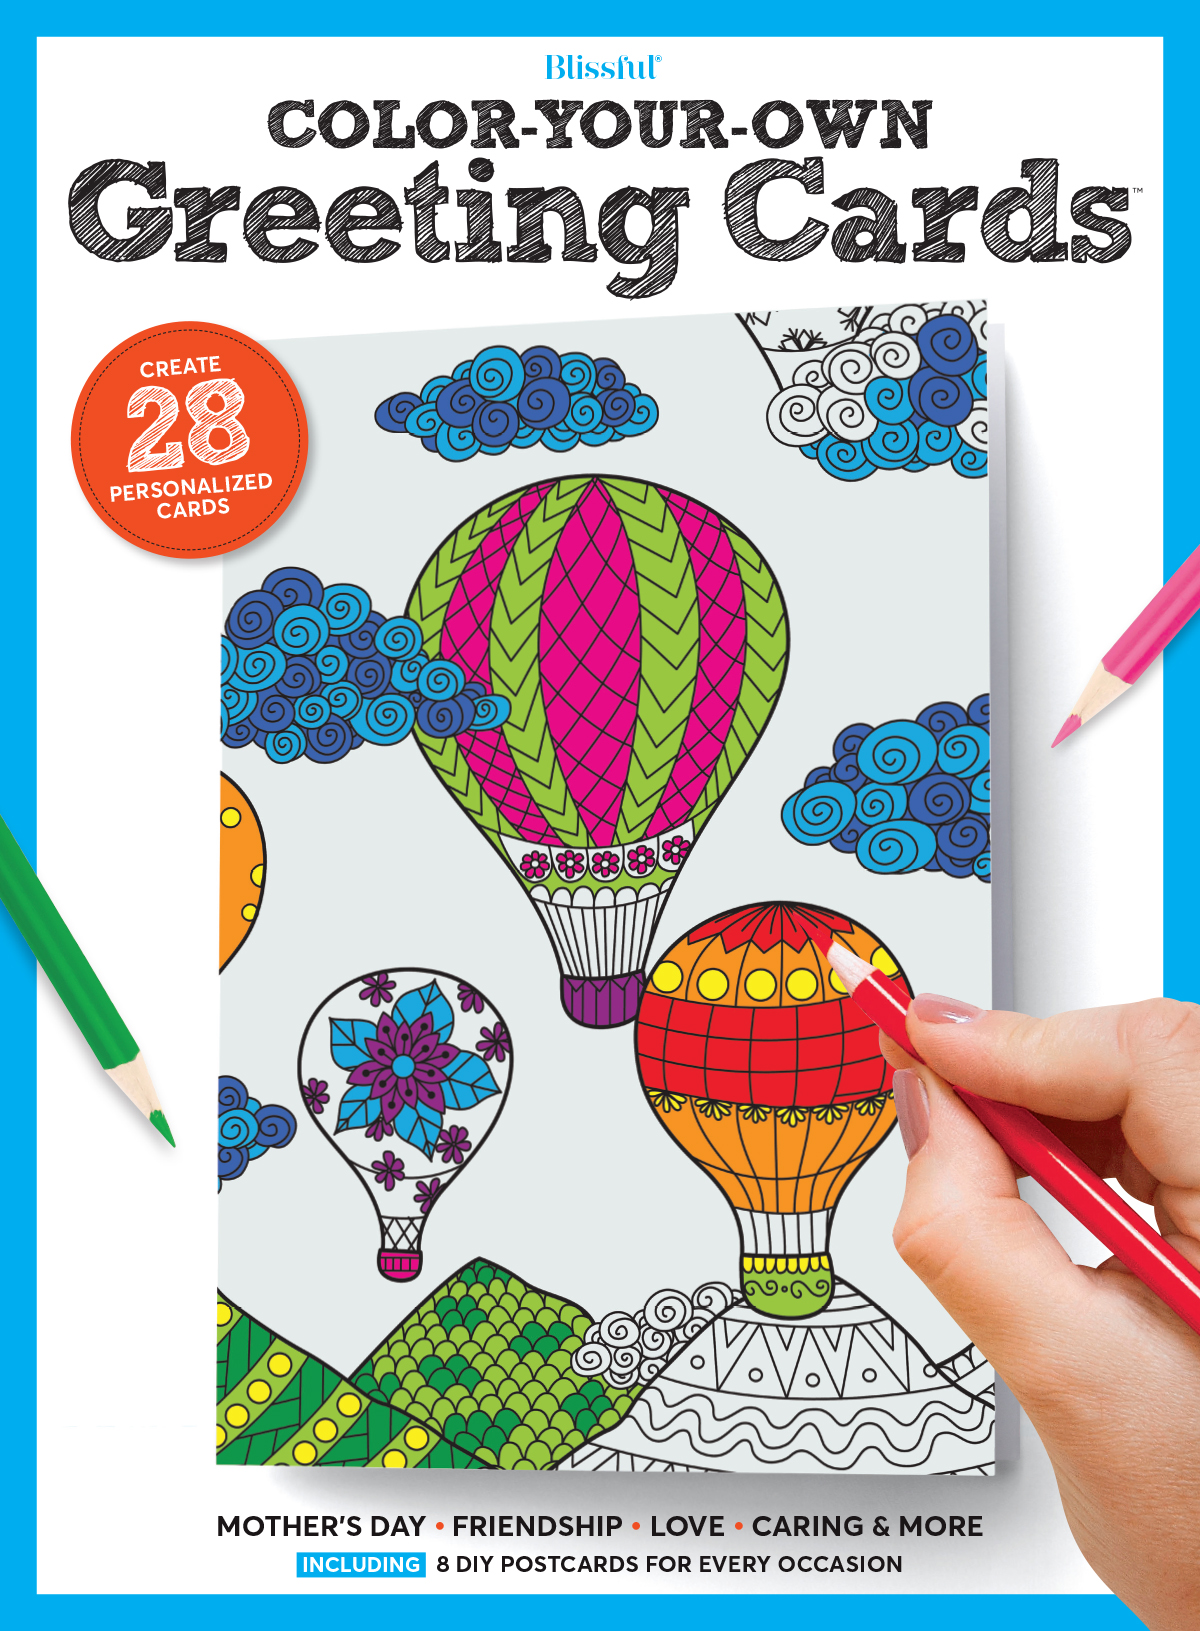 Blissful Color-Your-Own Greeting Cards Magazine